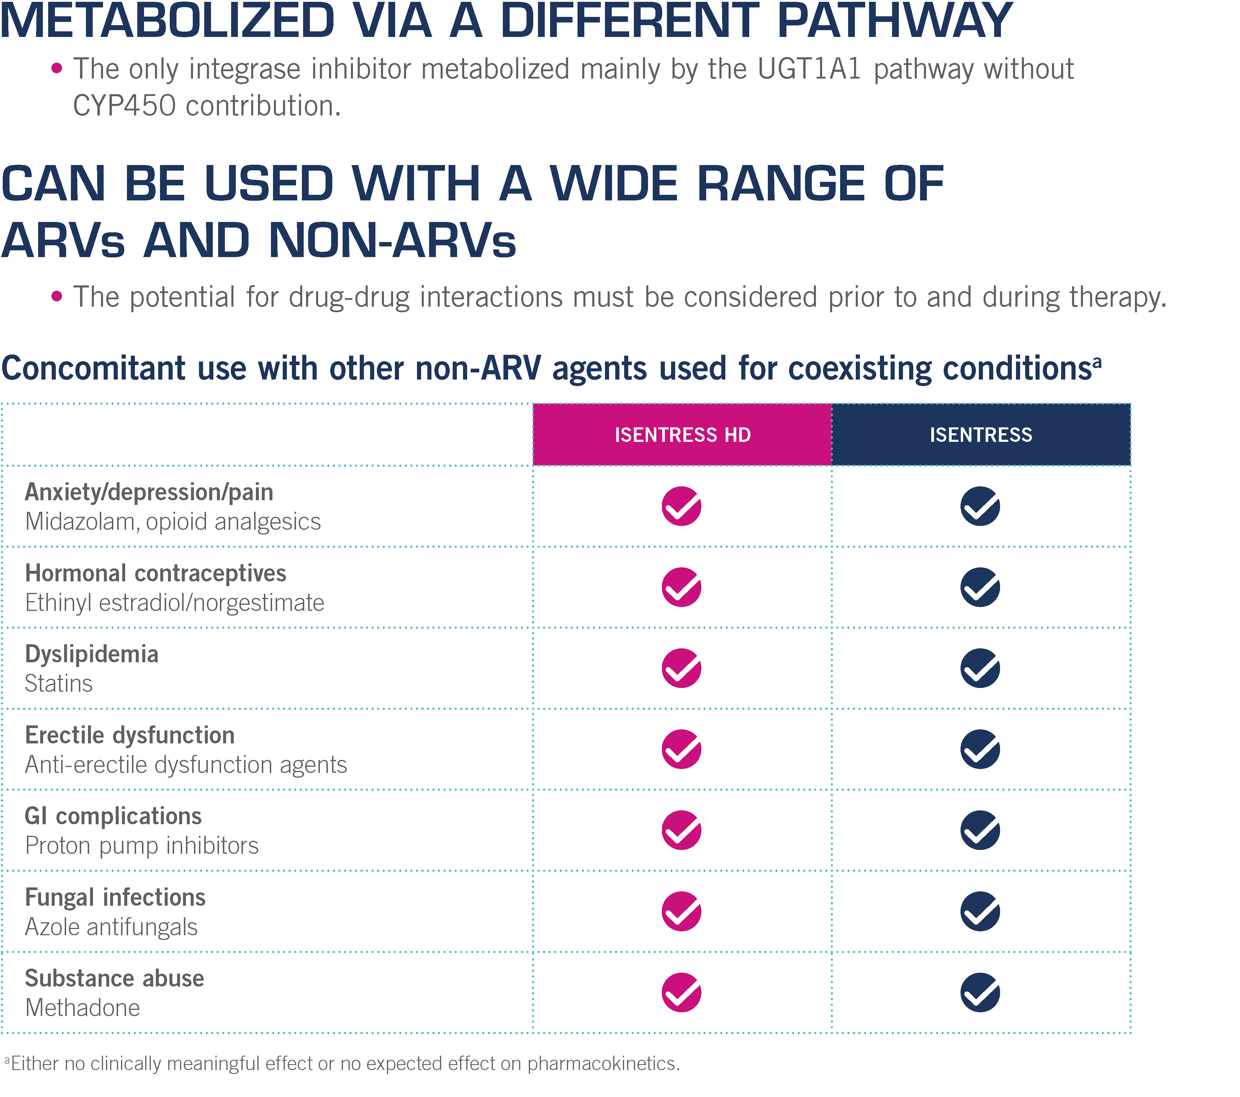 Concomitant Use for ISENTRESS® HD (raltegravir) With Other Non-ARV Agents Used for Coexisting Conditions